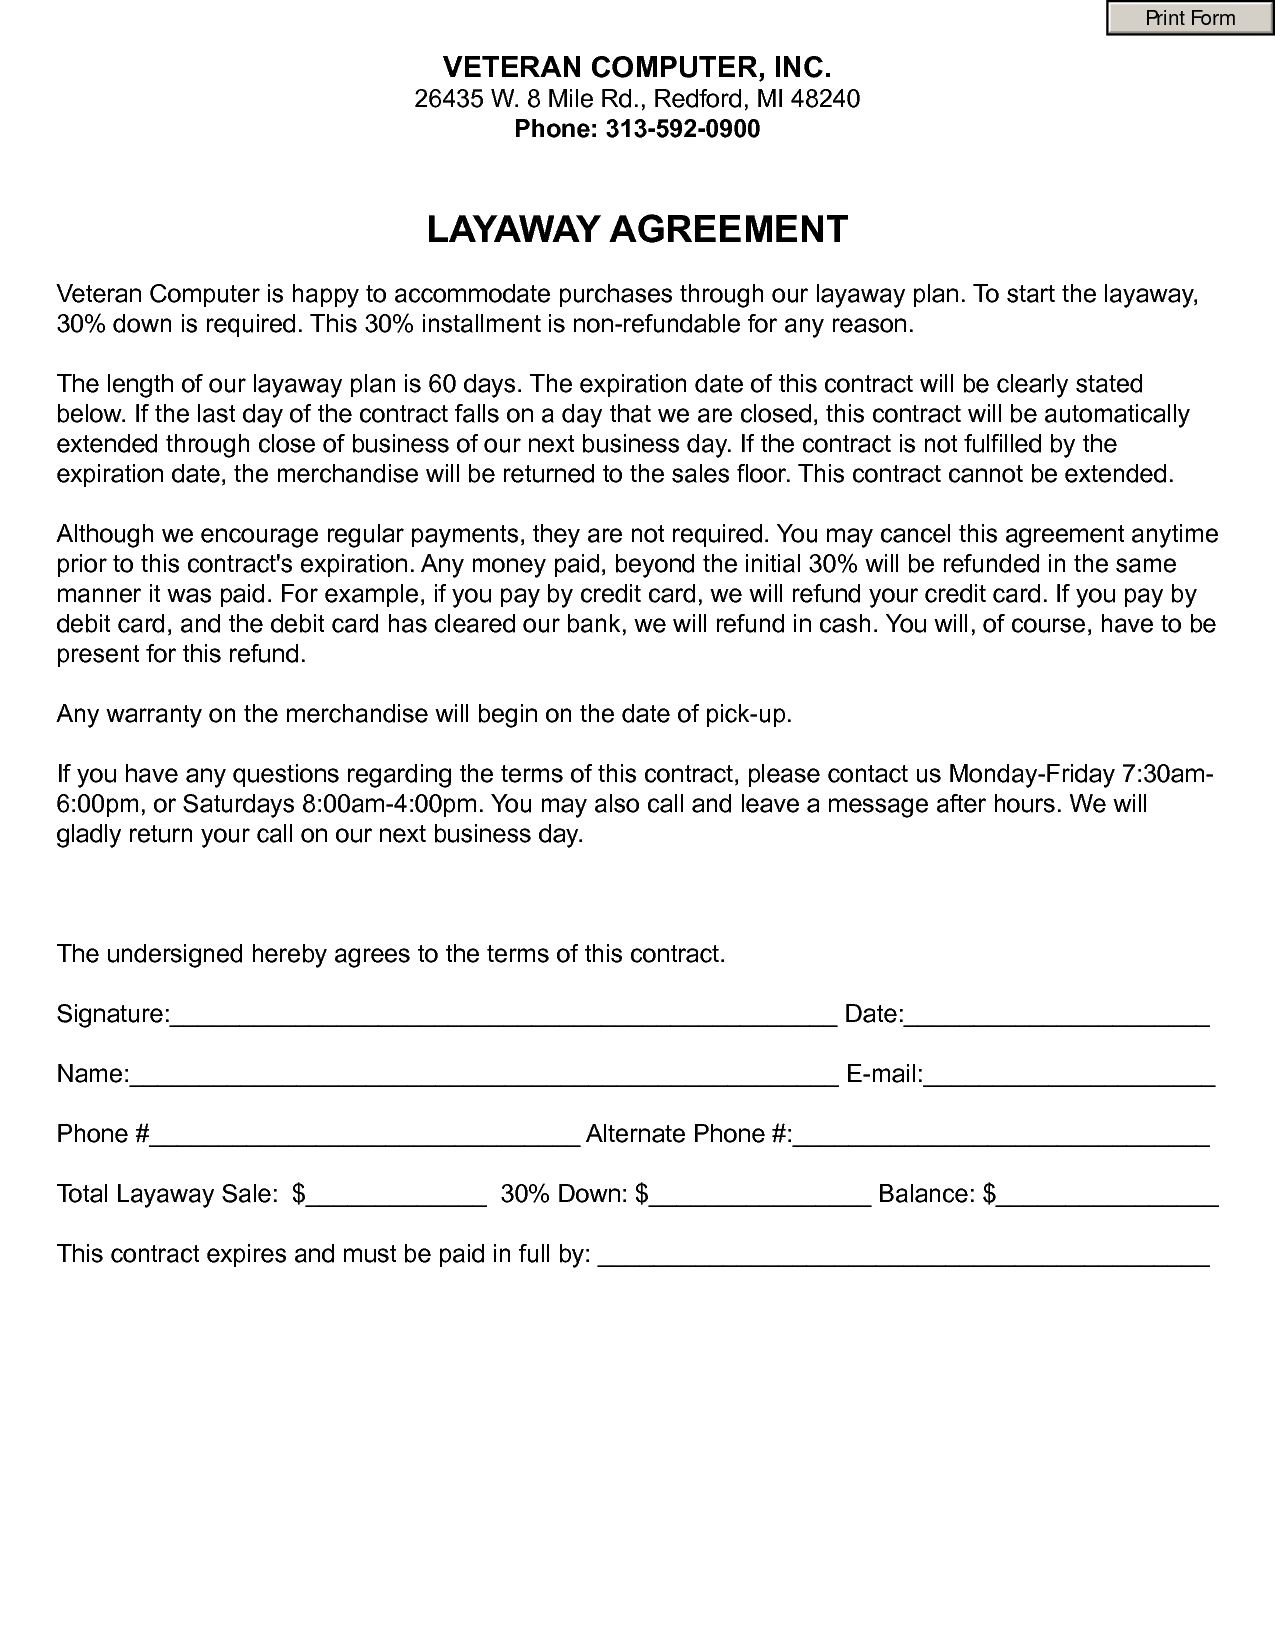 6 best images of retail layaway forms printable free layaway agreement forms free layaway. Black Bedroom Furniture Sets. Home Design Ideas